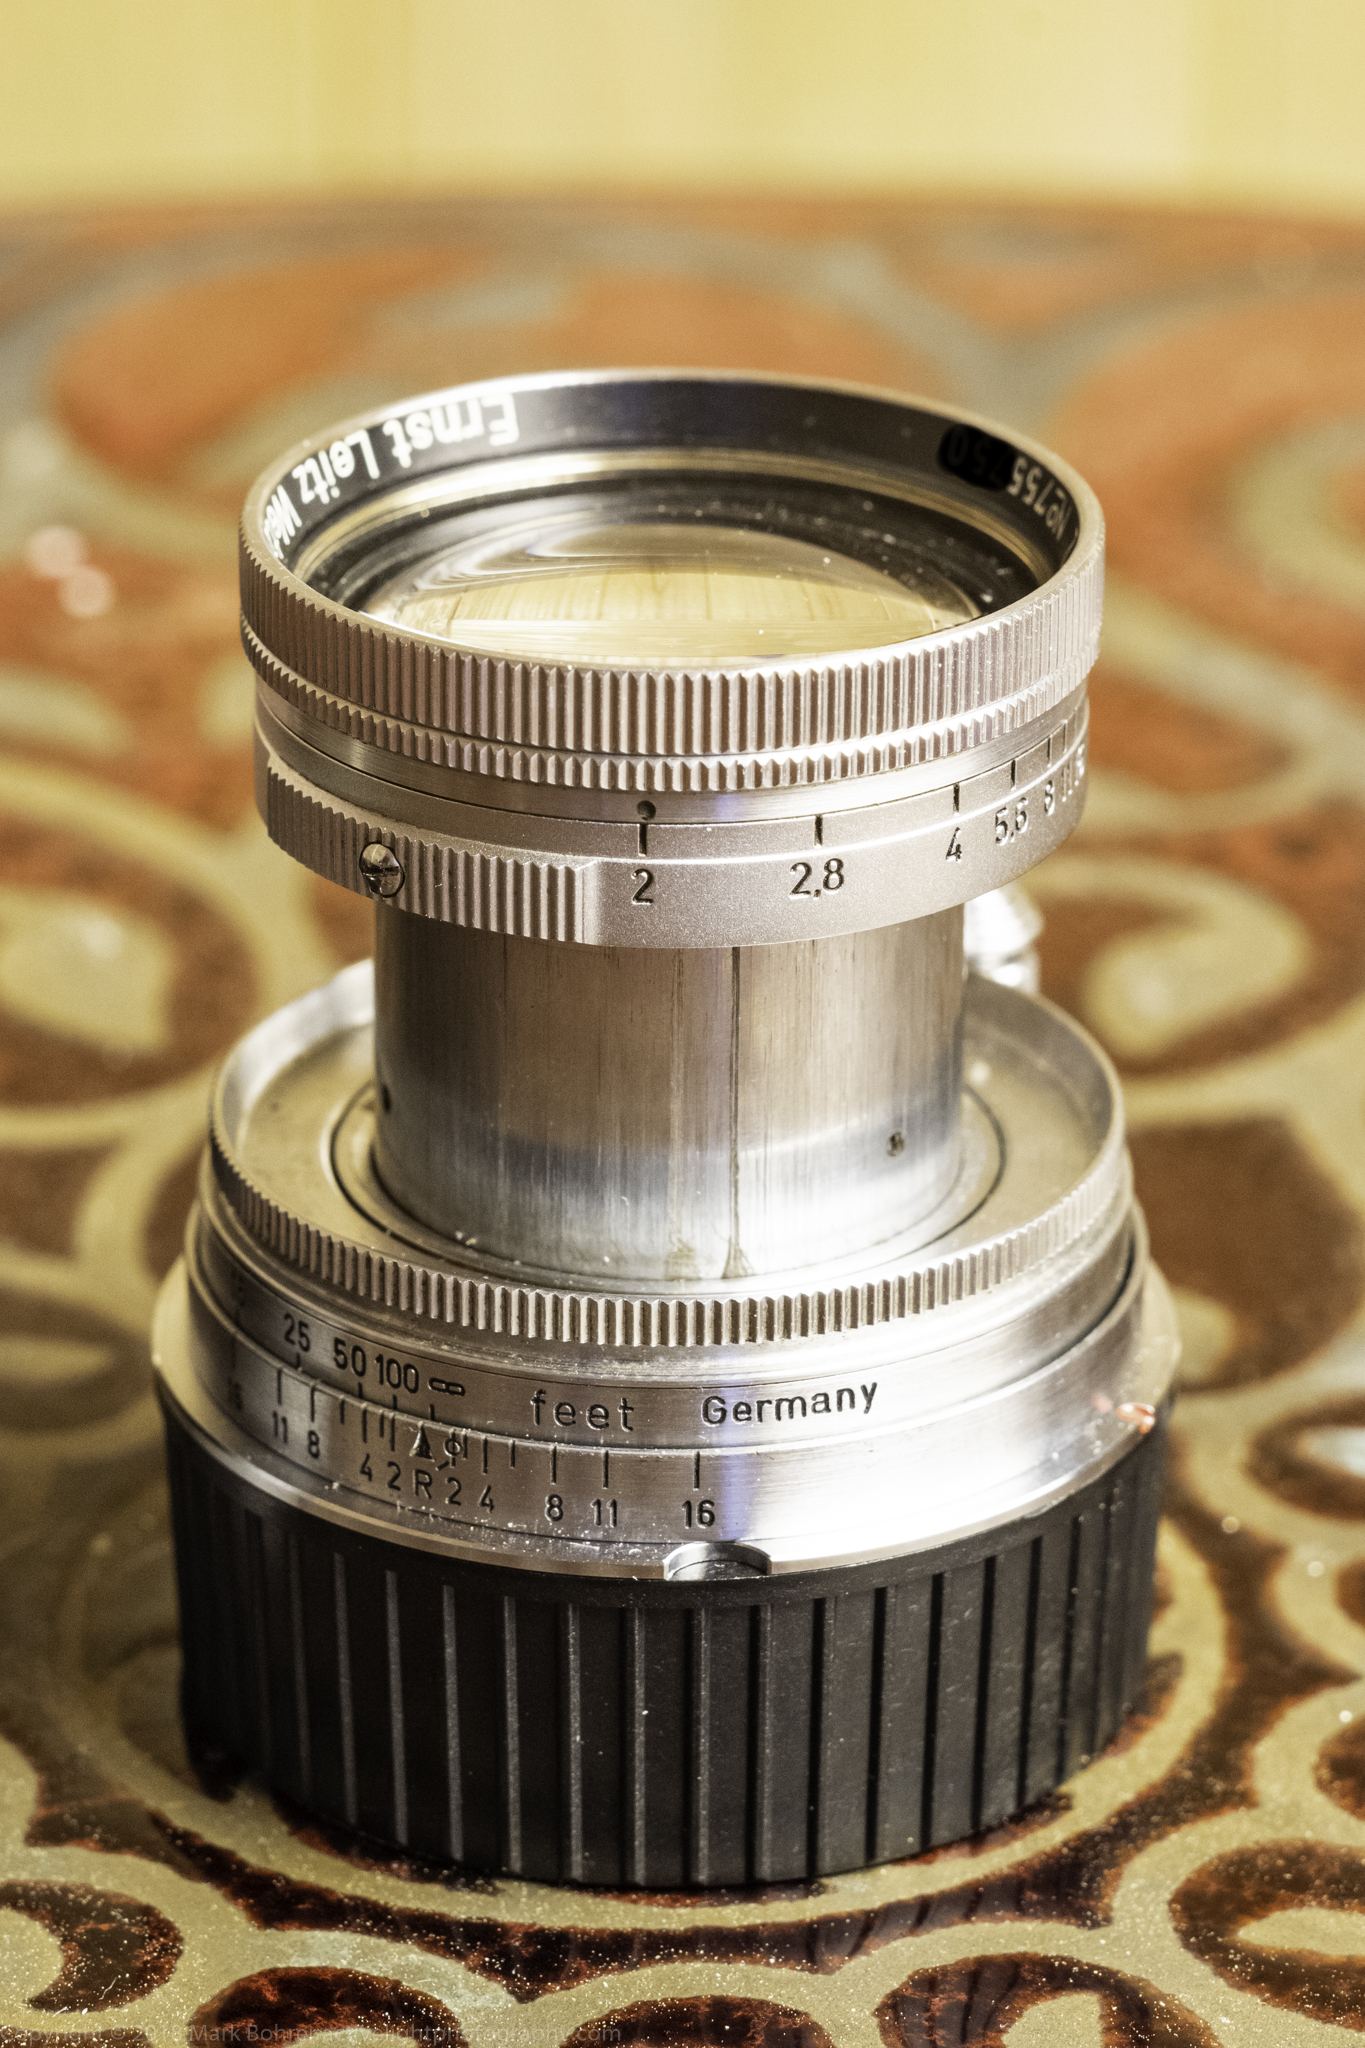 50mm f/2 Summitar from 1949 - dust and scratches on the barrel, but a vintage bargain